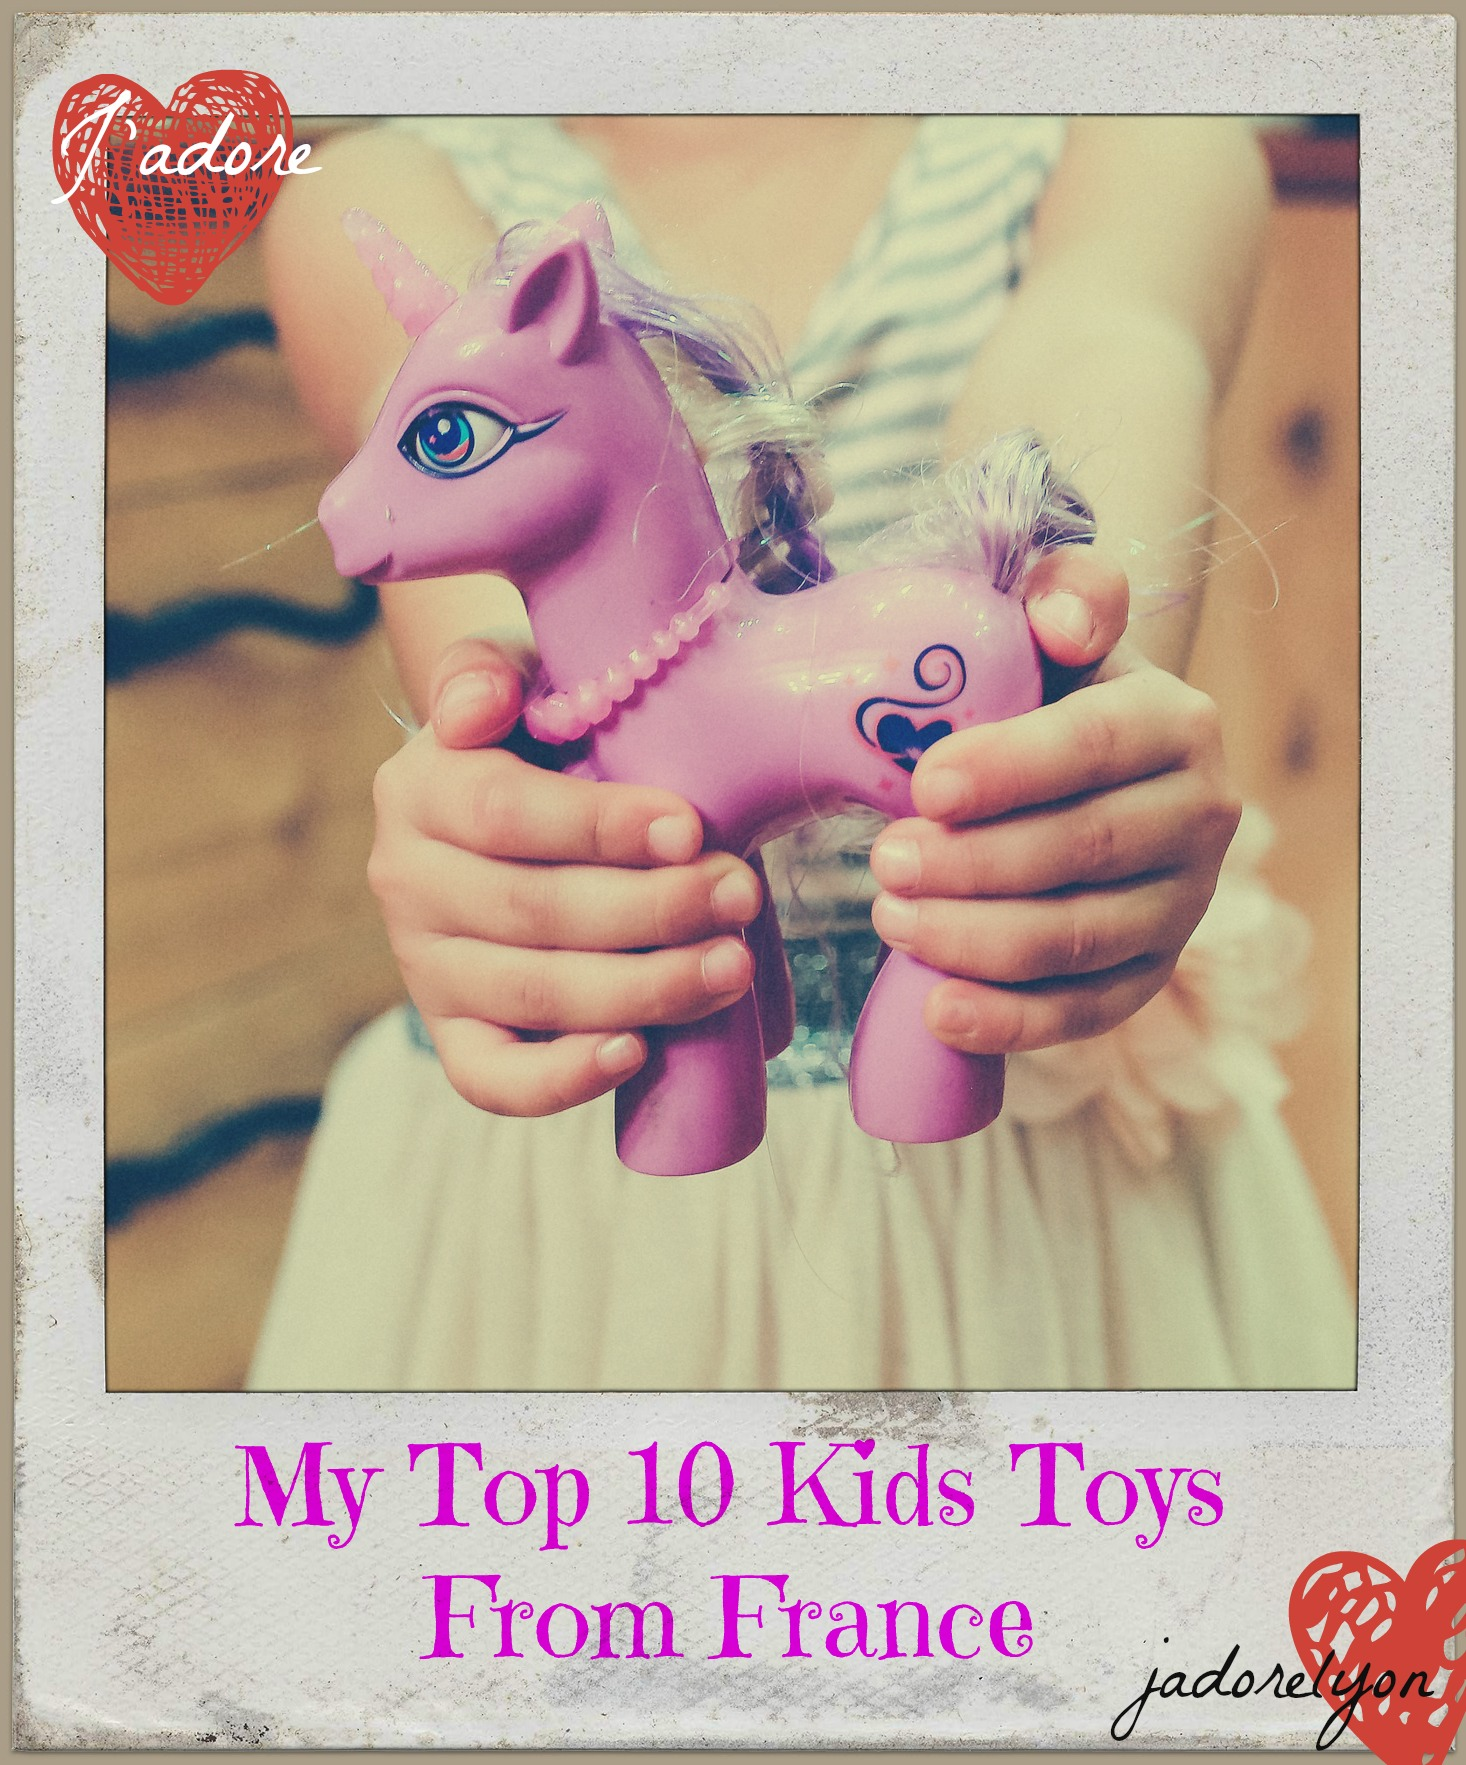 My Top 10 Choices for Kids Toys From France